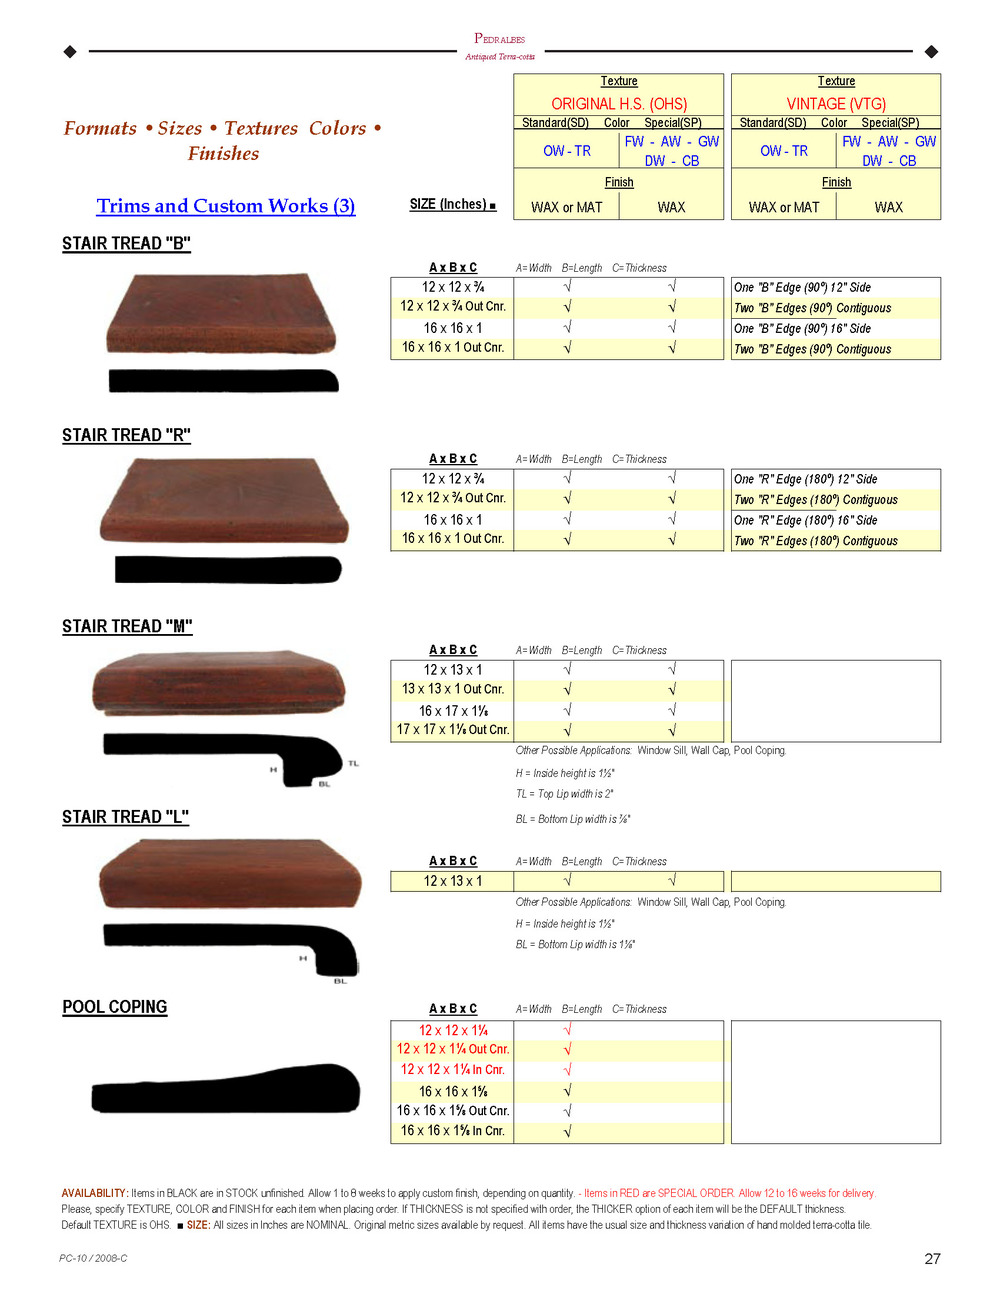 03-Formats+Sizes_Page_11.jpg